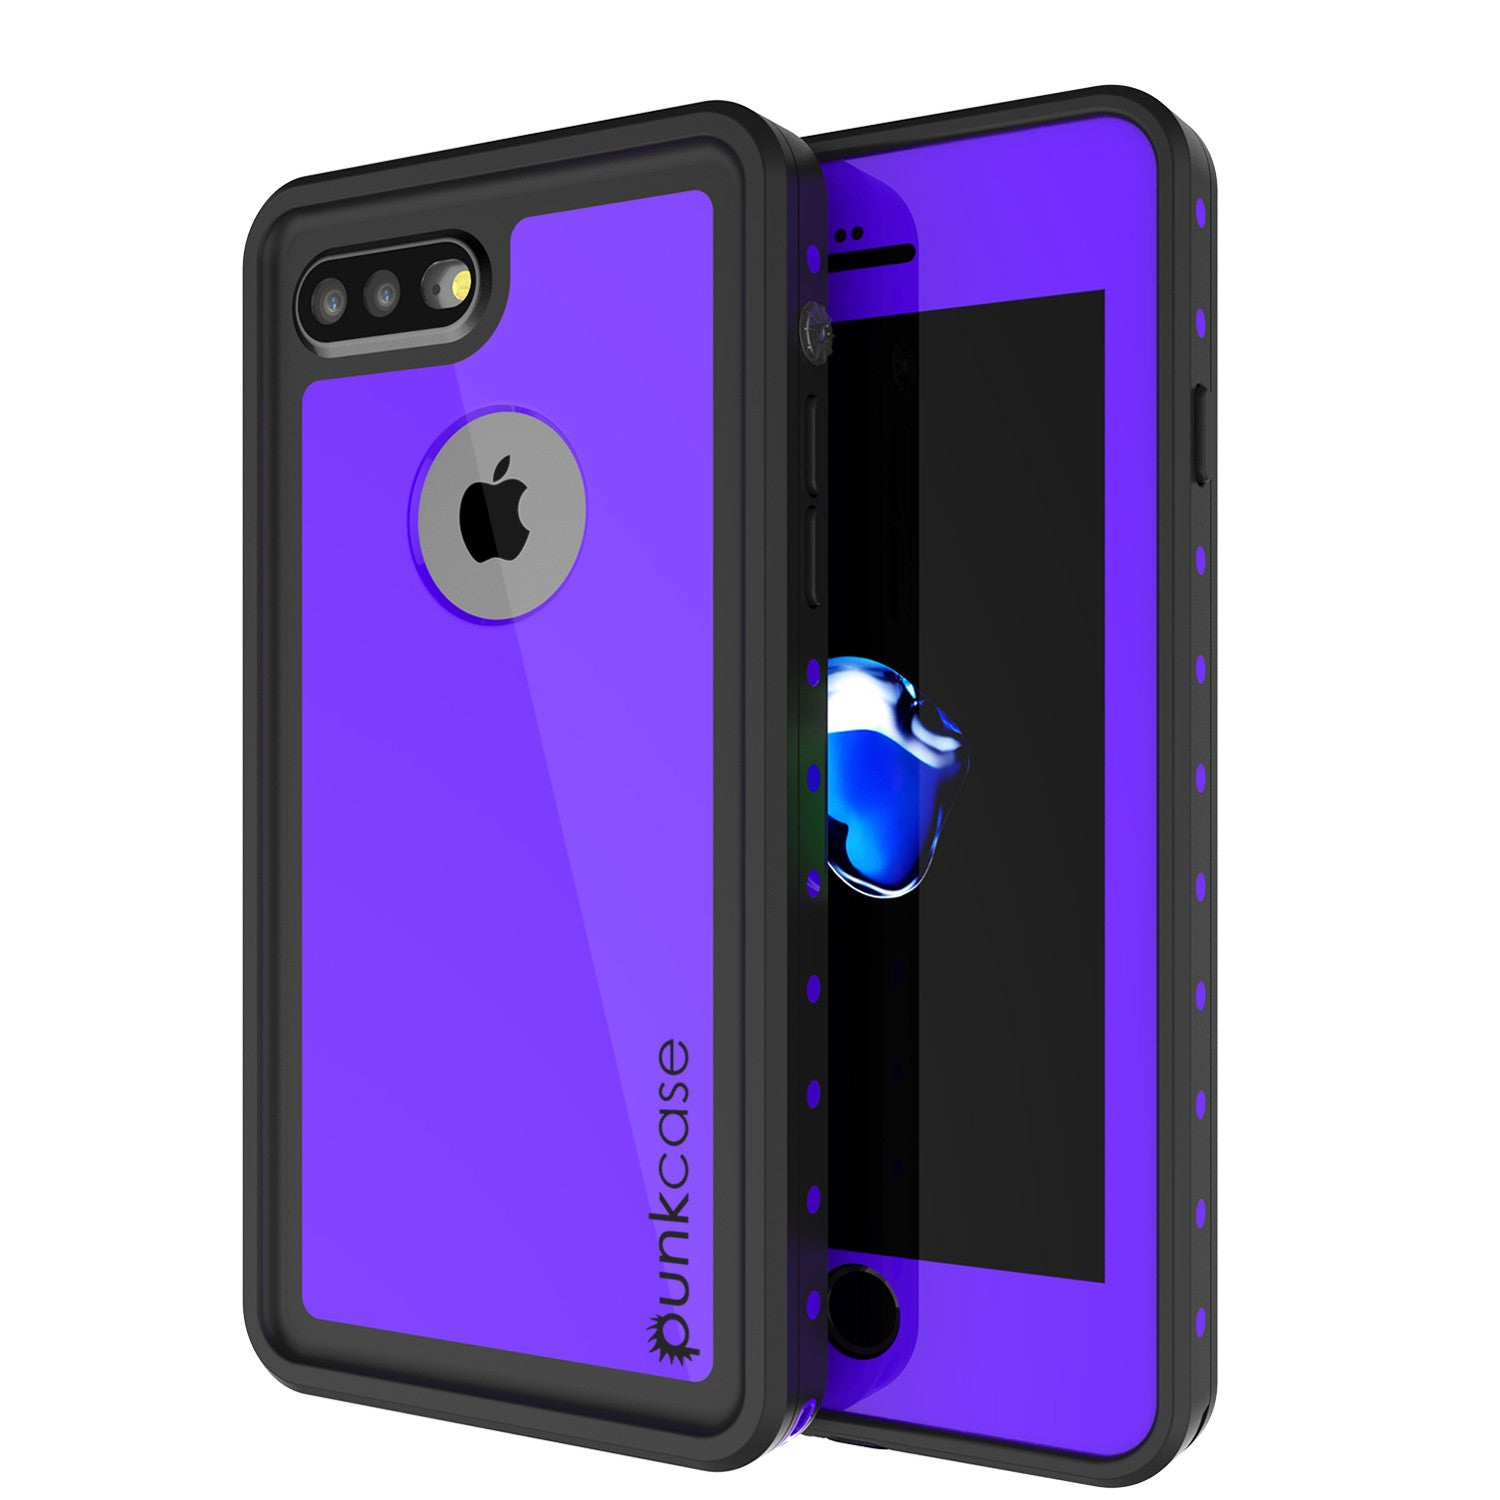 reputable site e87e8 707ec iPhone 7+ Plus Waterproof IP68 Case, Punkcase [Puple] [StudStar Series]  [Slim Fit] [Dirtproof]